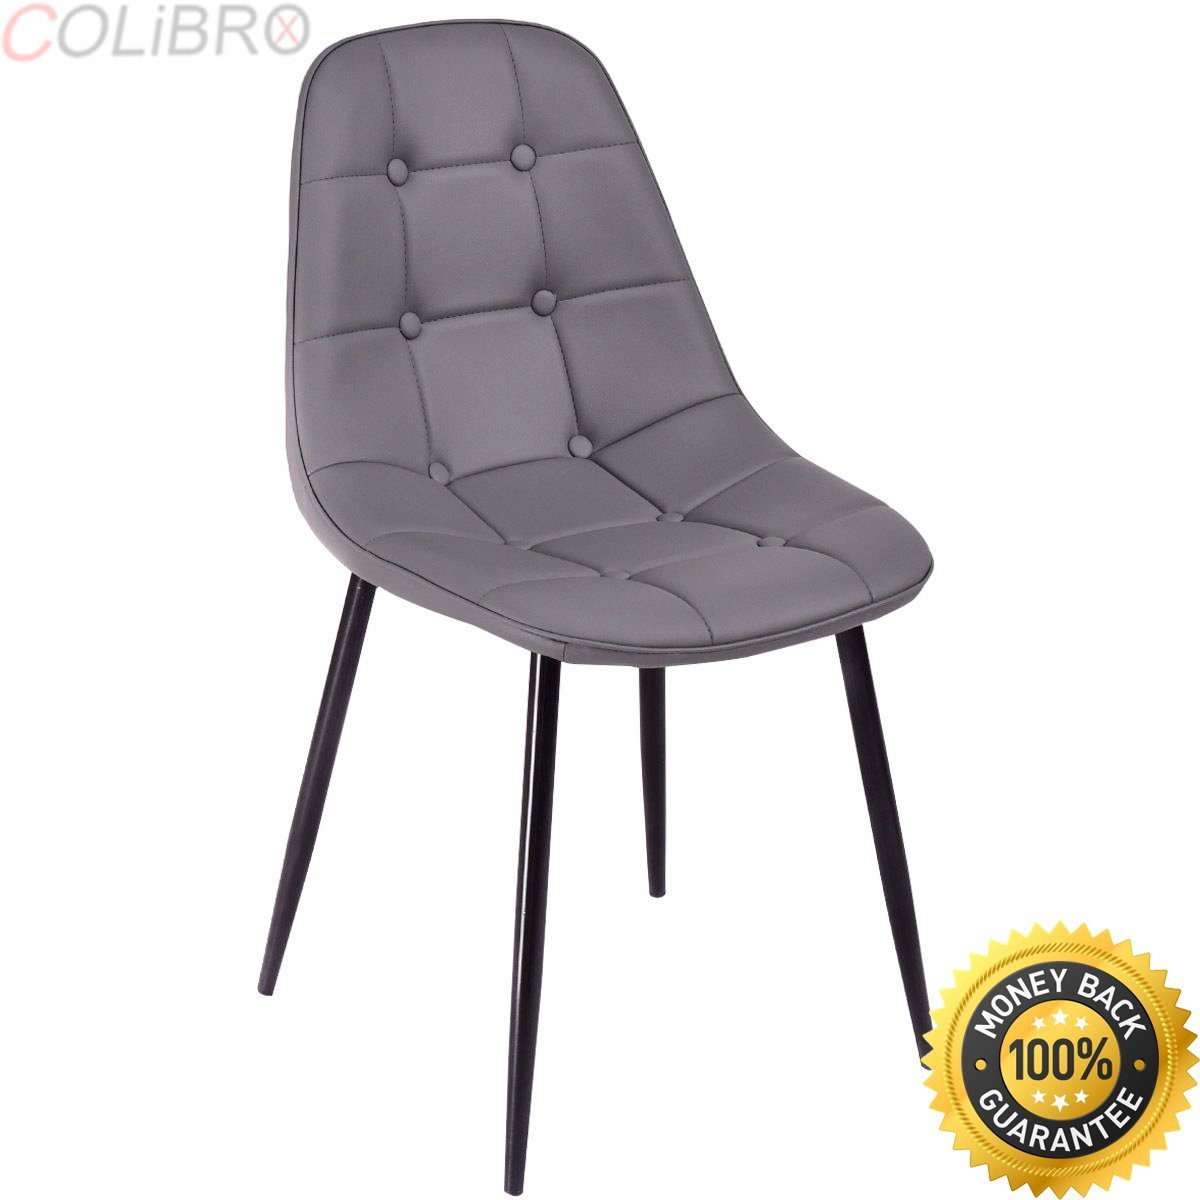 COLIBROX--Set of 4 Dining Chair PU Leather Armless Metel Leg Tufted Accent Chair Gray. armless accent chair. best grey cheap tufted dining chairs amazon. tufted dining chair set of 4.